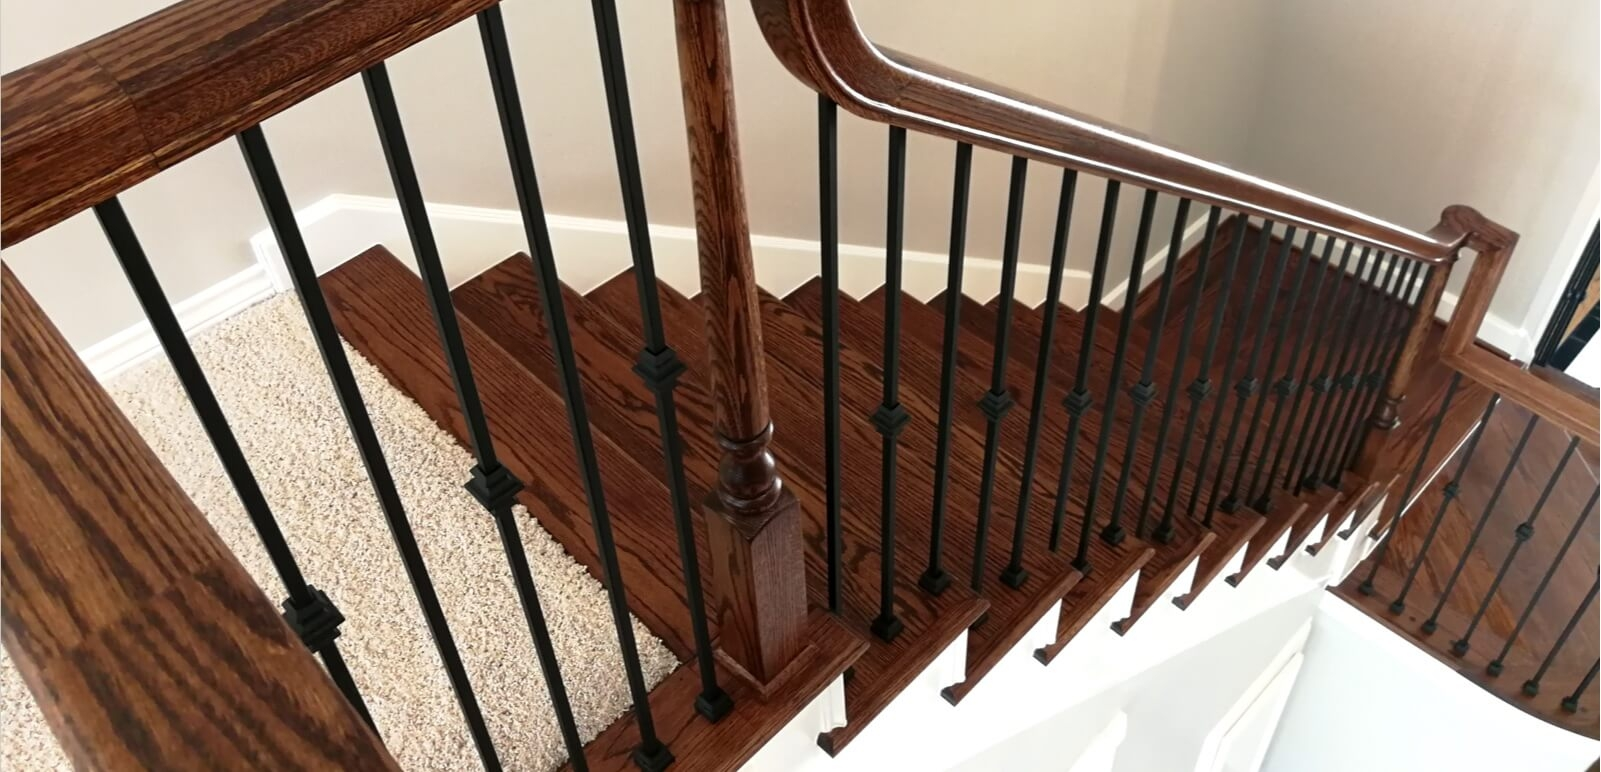 Houston Stair Parts Stair Remodel Iron Balusters Railing   Staircase Renovation Near Me   Flooring   Diy Staircase Makeover   Wood   Stair Case   Paint